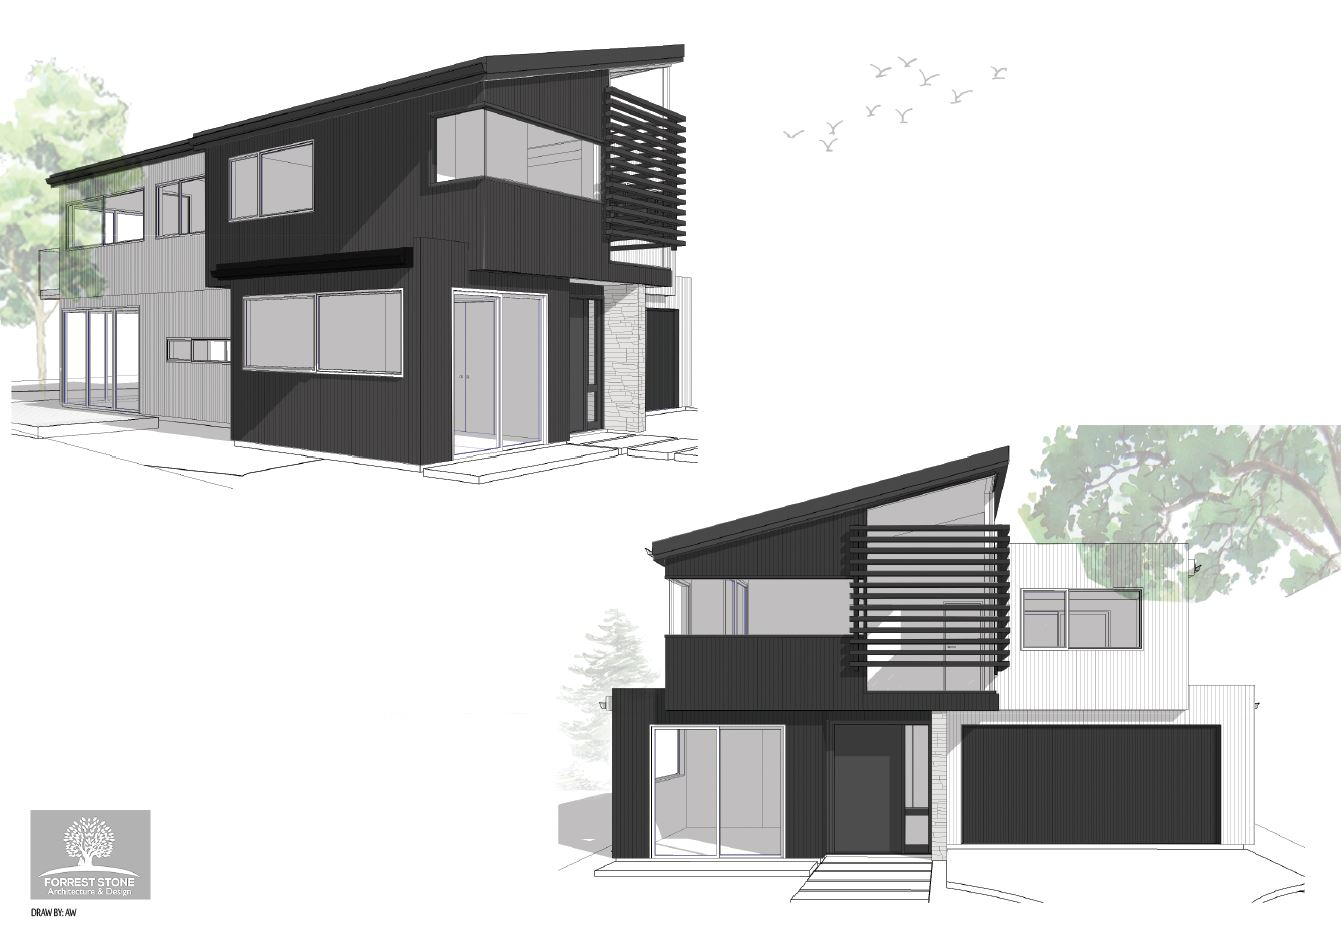 Hobsonville point developments